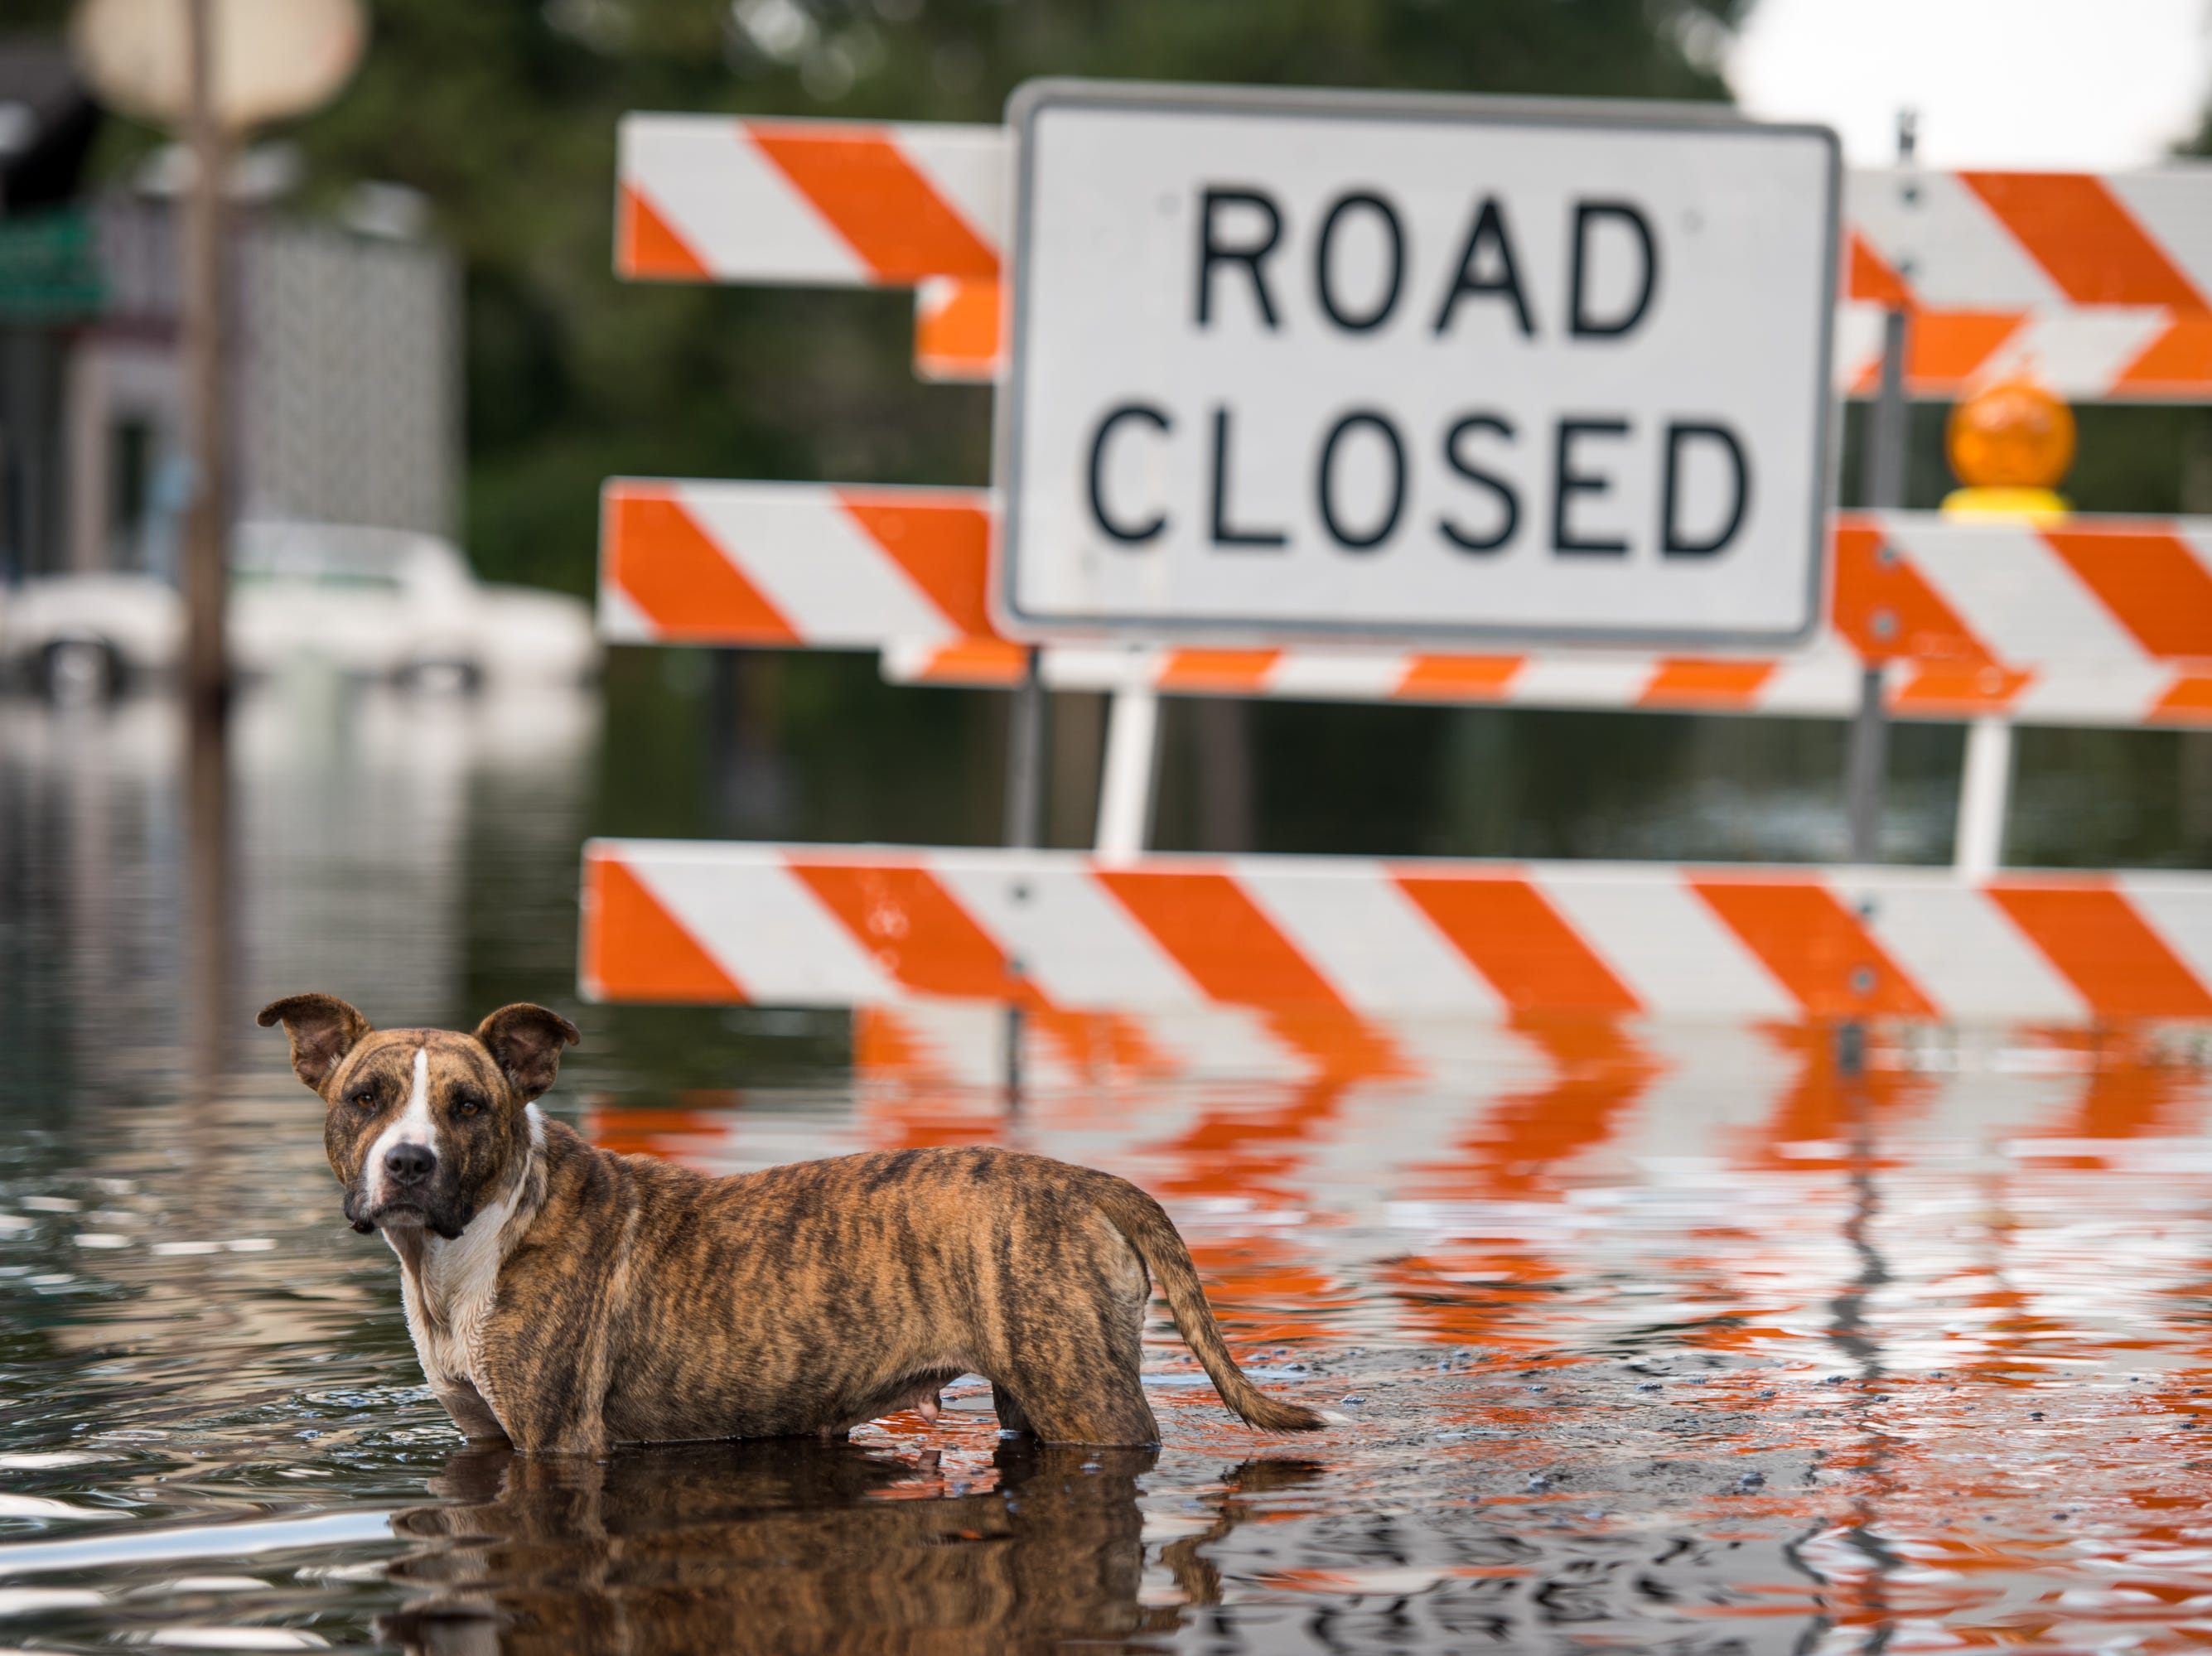 A dog stands in floodwaters from the Waccamaw River caused by Hurricane Florence on Sept. 26, 2018 in Bucksport, S.C.